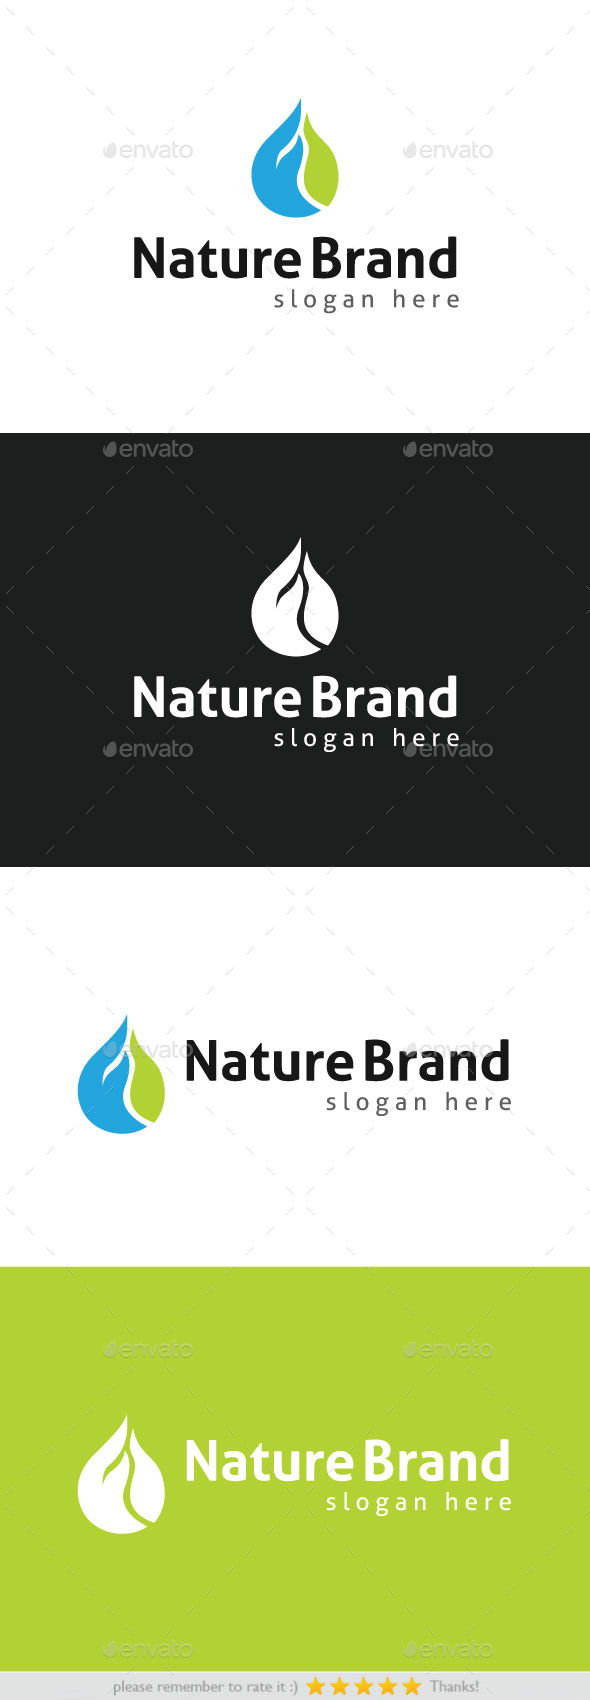 GraphicRiver Nature Brand 8808177